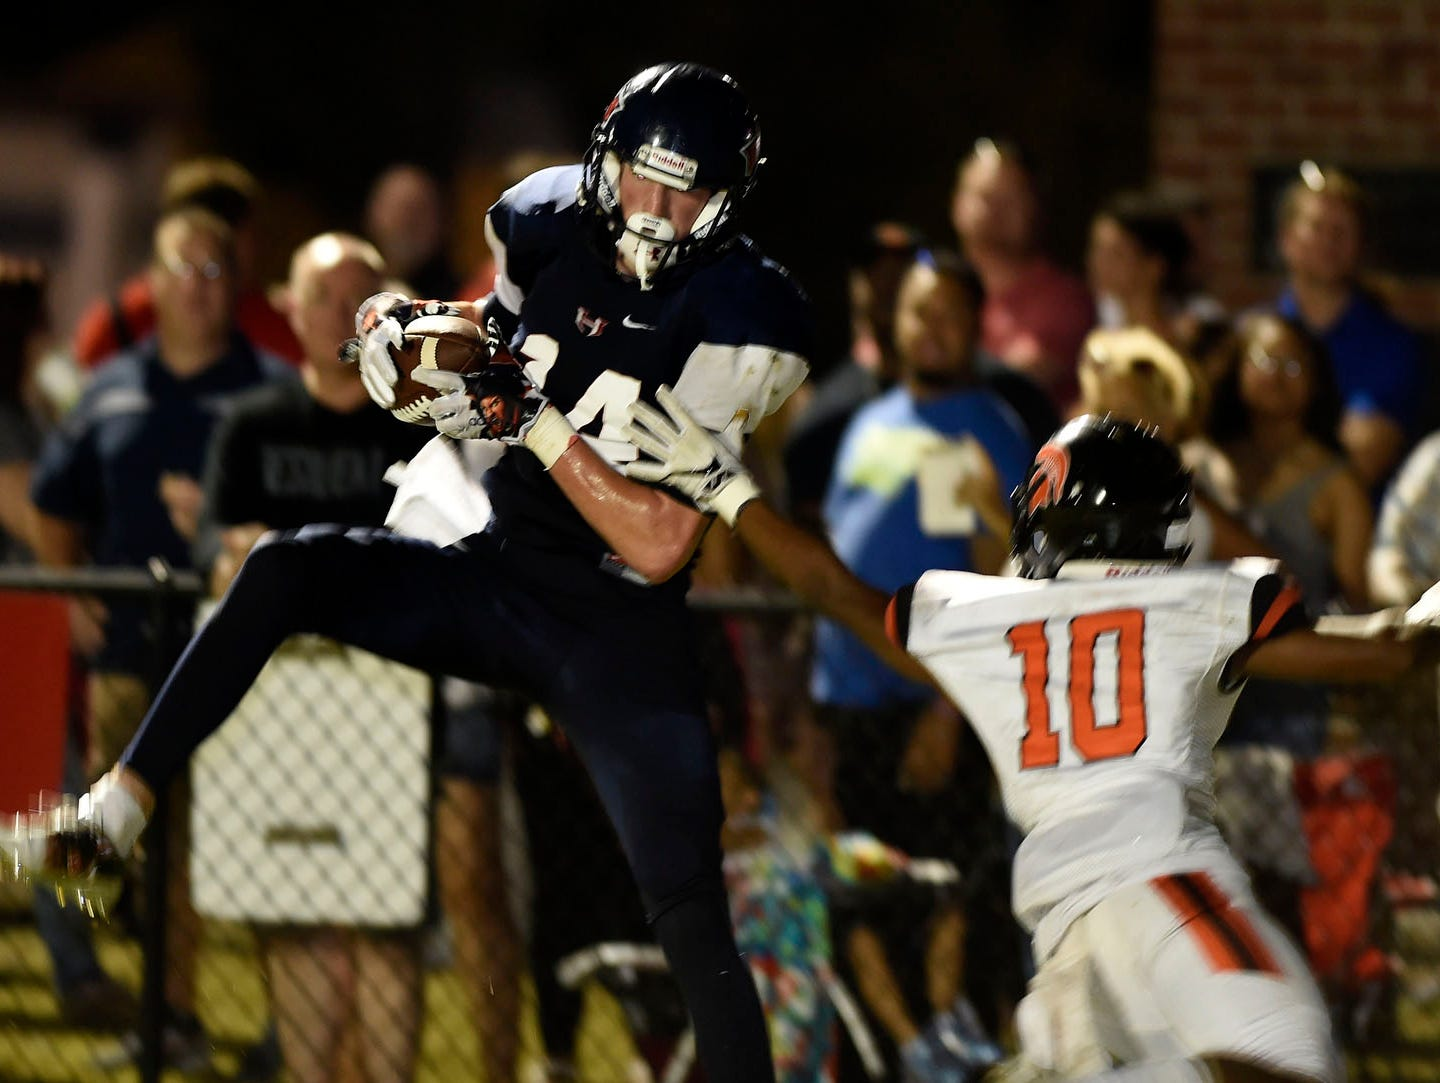 WH Heritage' s Nick Desmarais (14) pulls down a touchdown pass over Stratford's Rod Reed (10) in the first half during week 5 of High School Football on Friday, September 16.